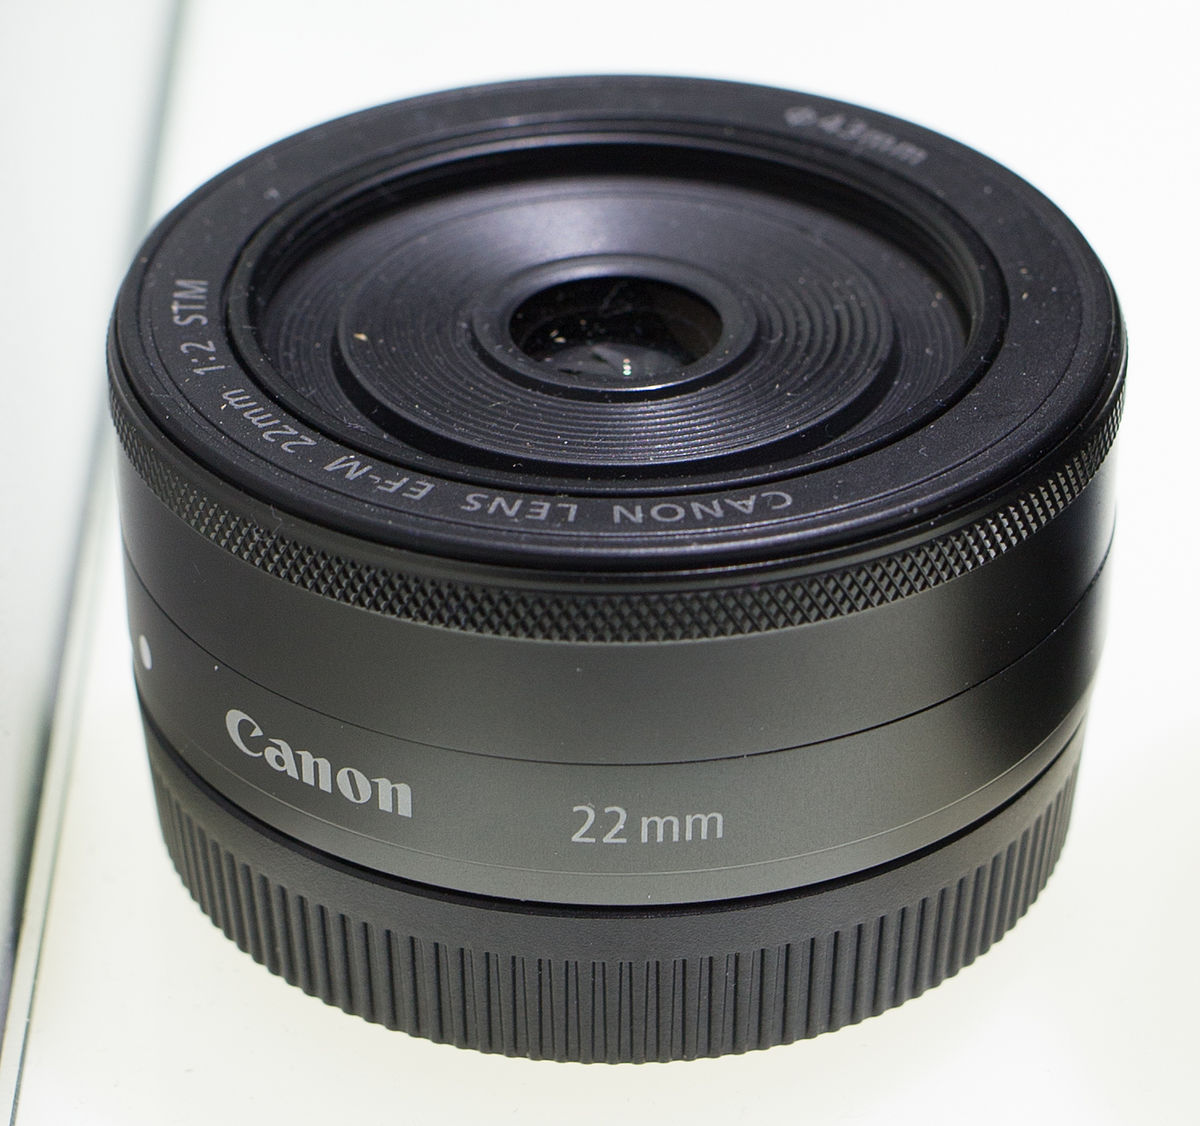 Canon Ef M 22mm Lens Wikipedia 28mm F 35 Macro Is Stm